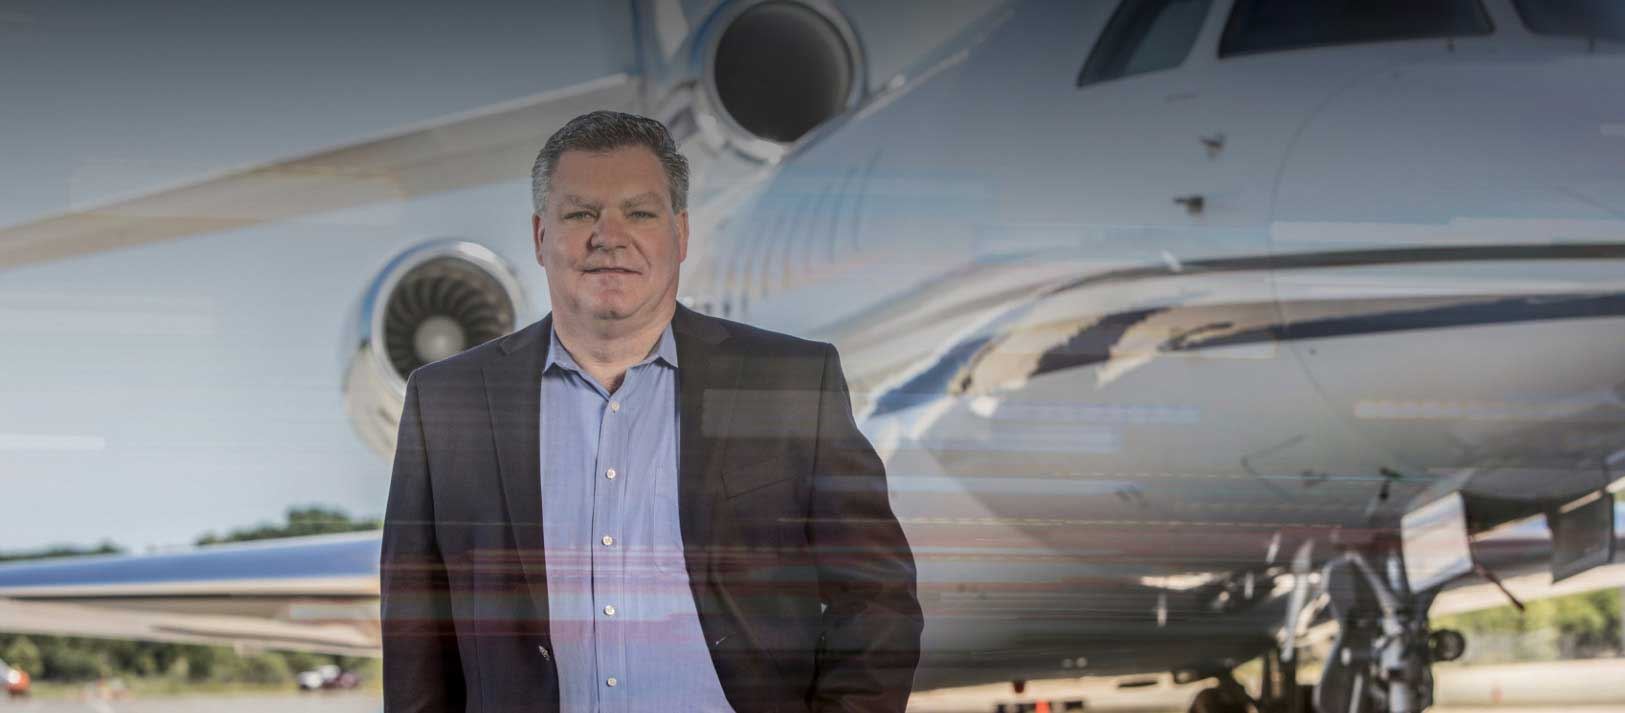 Jim Noonan • Senior Managing Director • Global Jet Capital